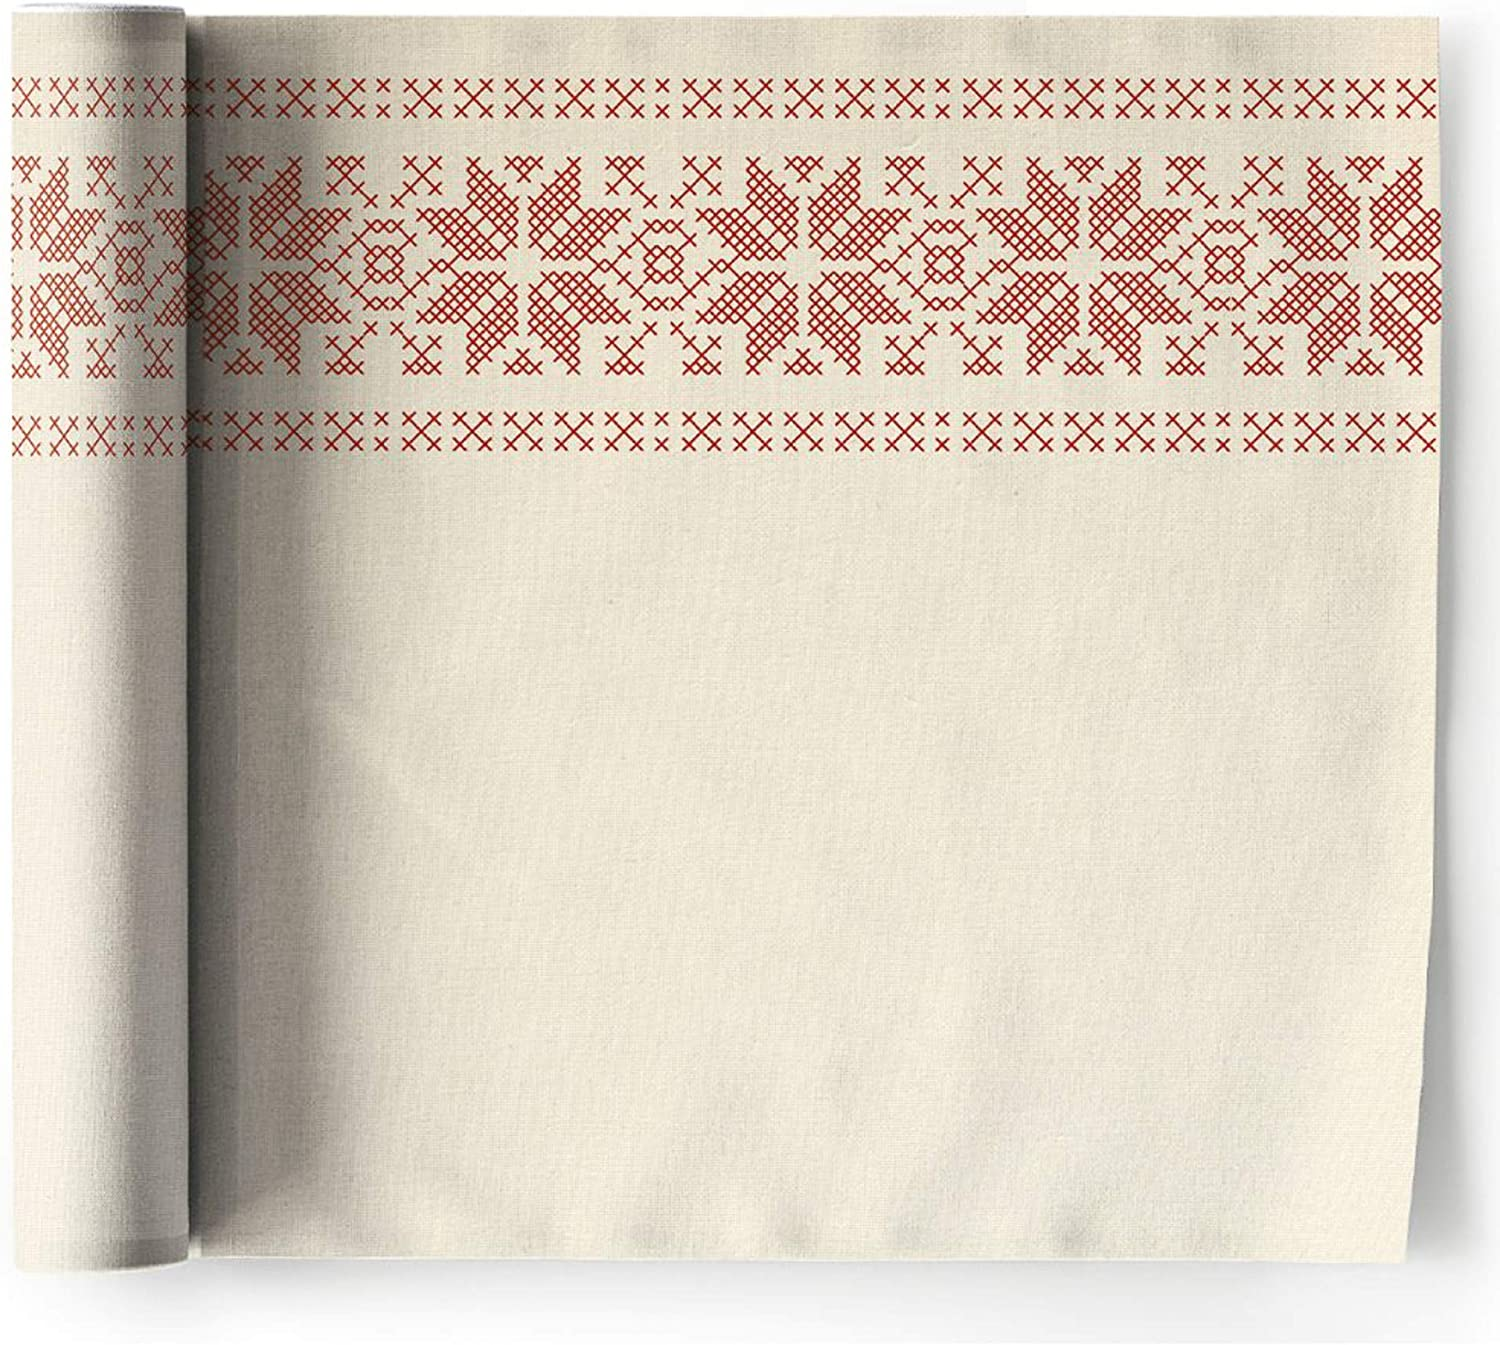 6 per roll Christmas Jumper 12.6 x 12.6 inch MY DRAP Christmas Recycled Cotton Dinner Napkin